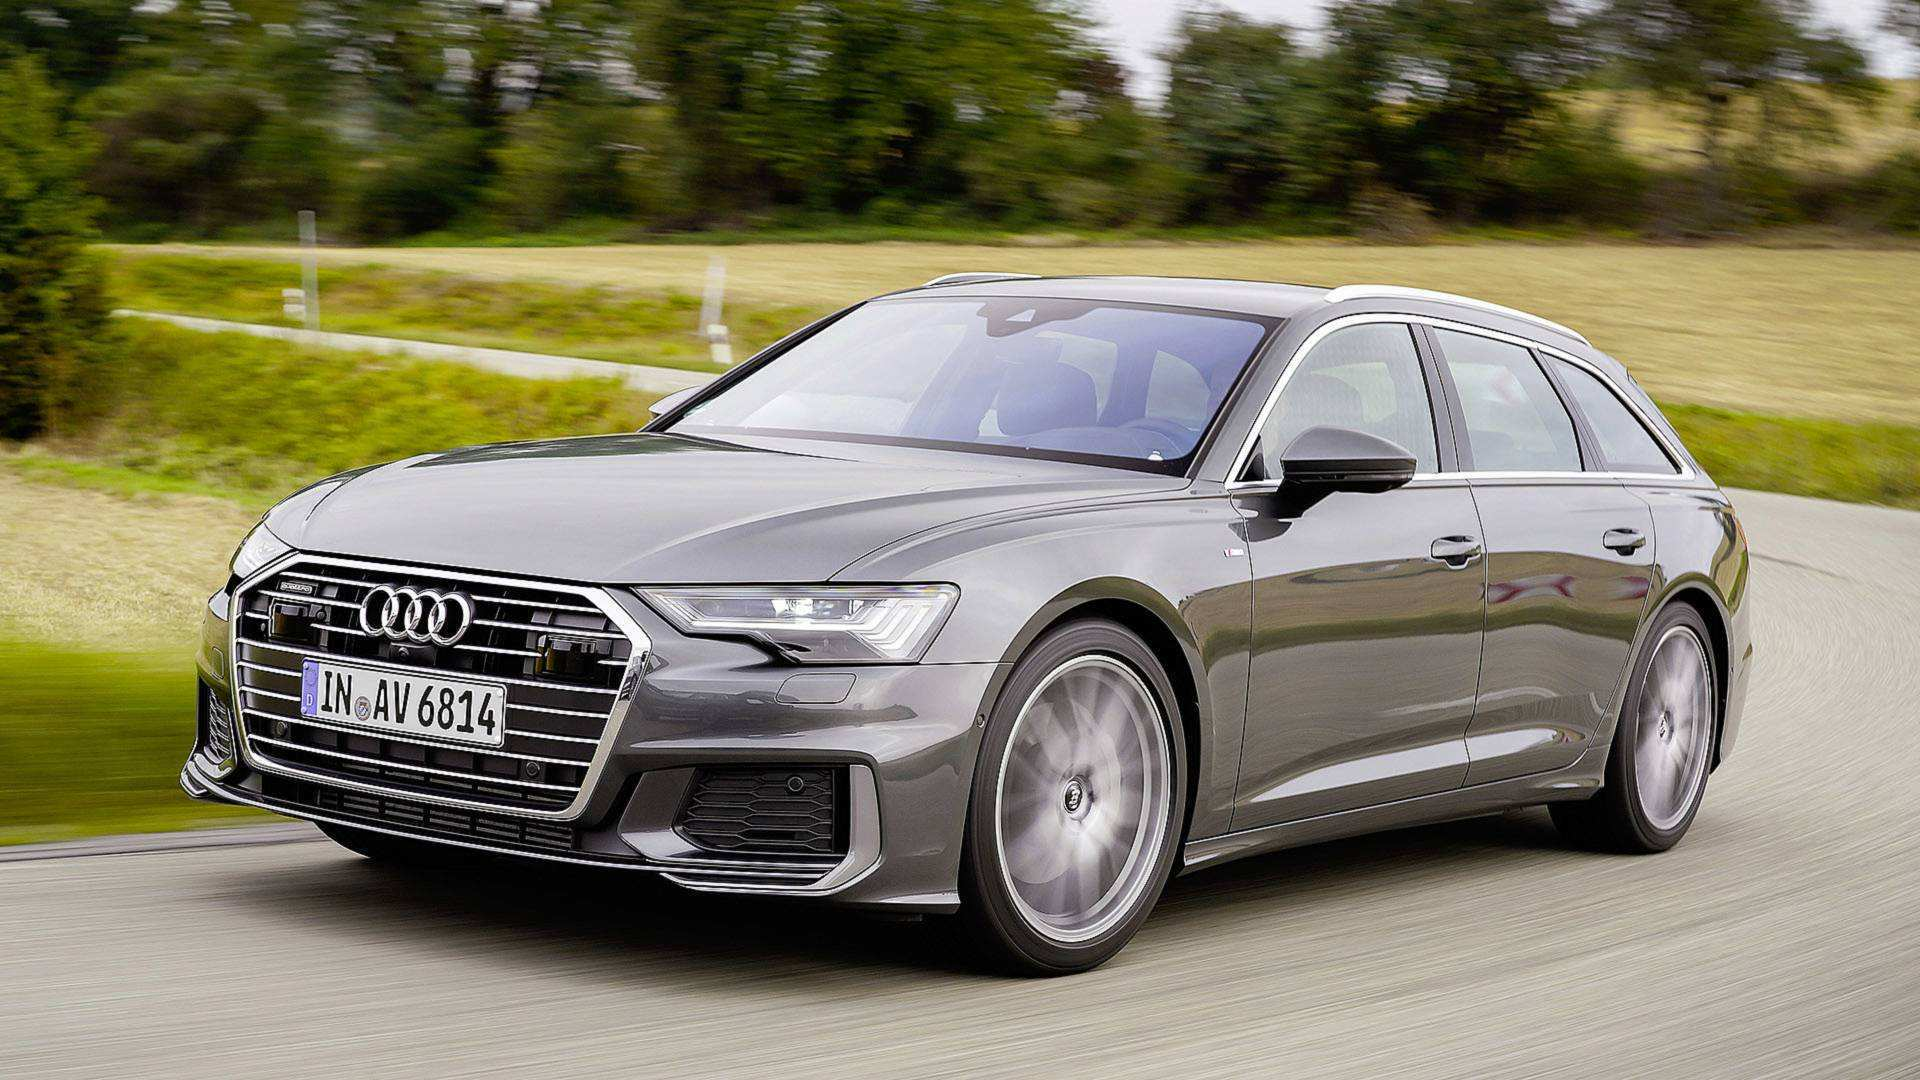 90 All New 2019 Audi Wagon Usa Rumors